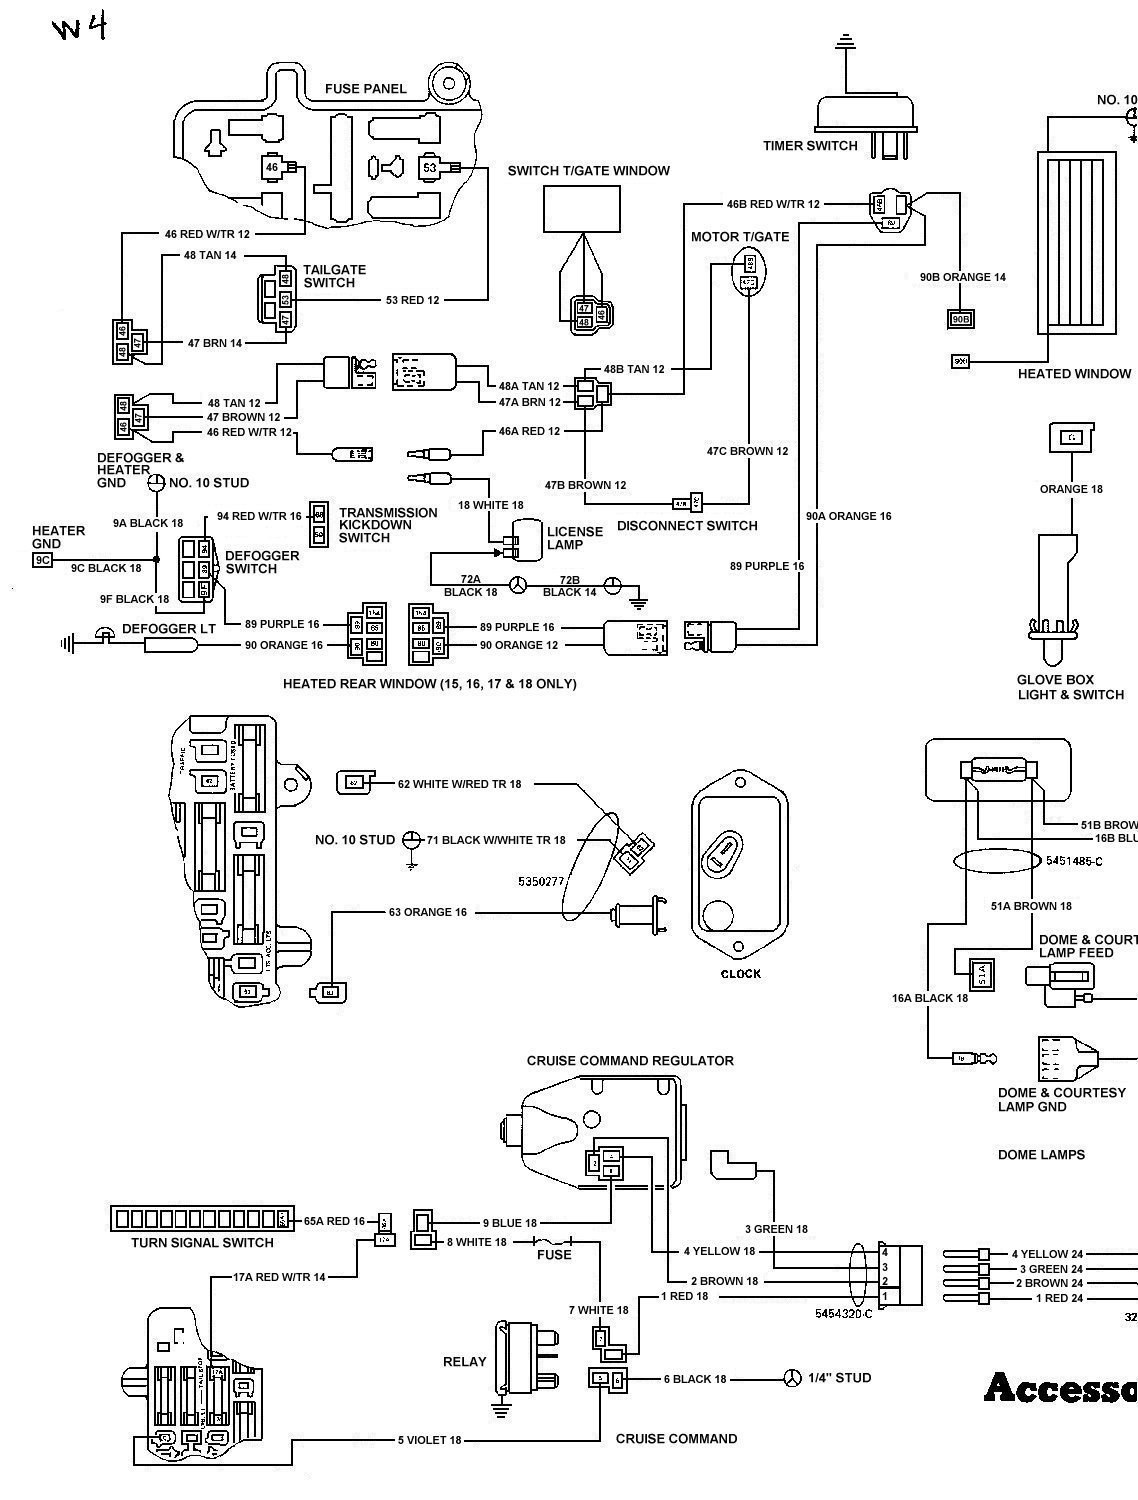 1982 cj5 heater wiring diagram 1977 cj5 heater diagram #14